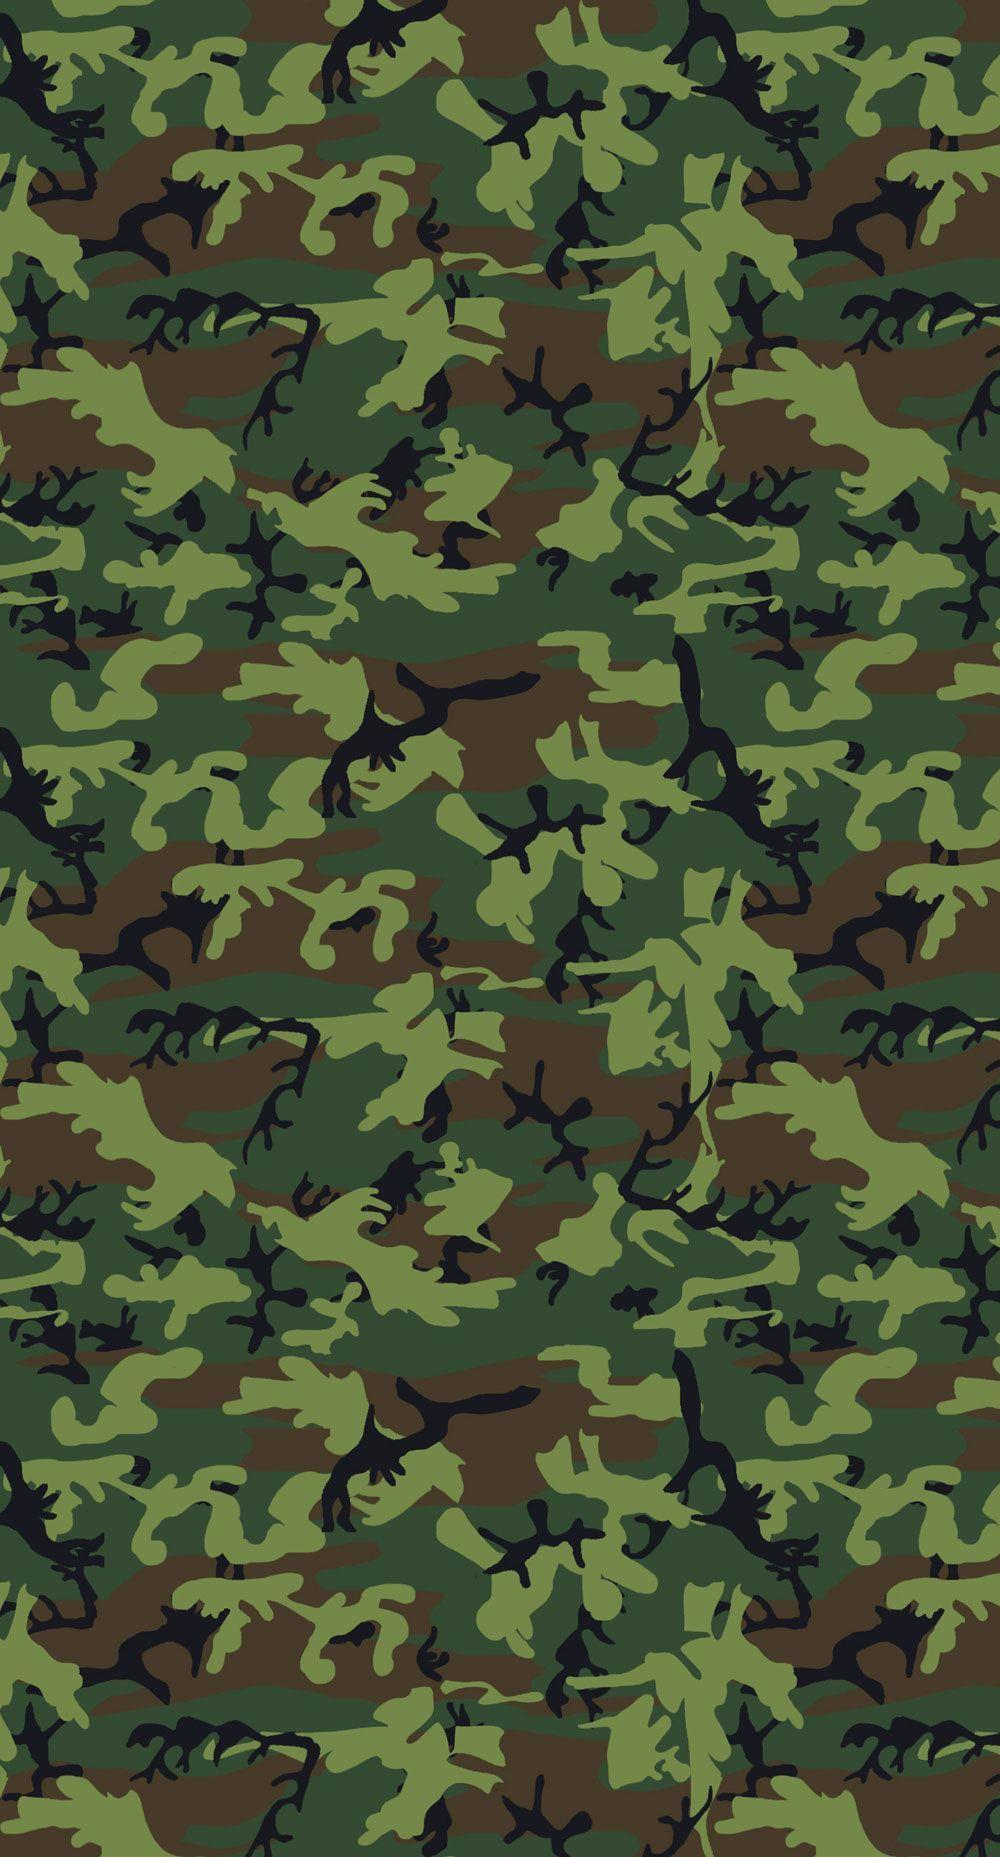 camo patterns army green camouflage military pattern backgrounds cool iphone wallpapers etsy mobile wall stencil designs militar paper texture screen